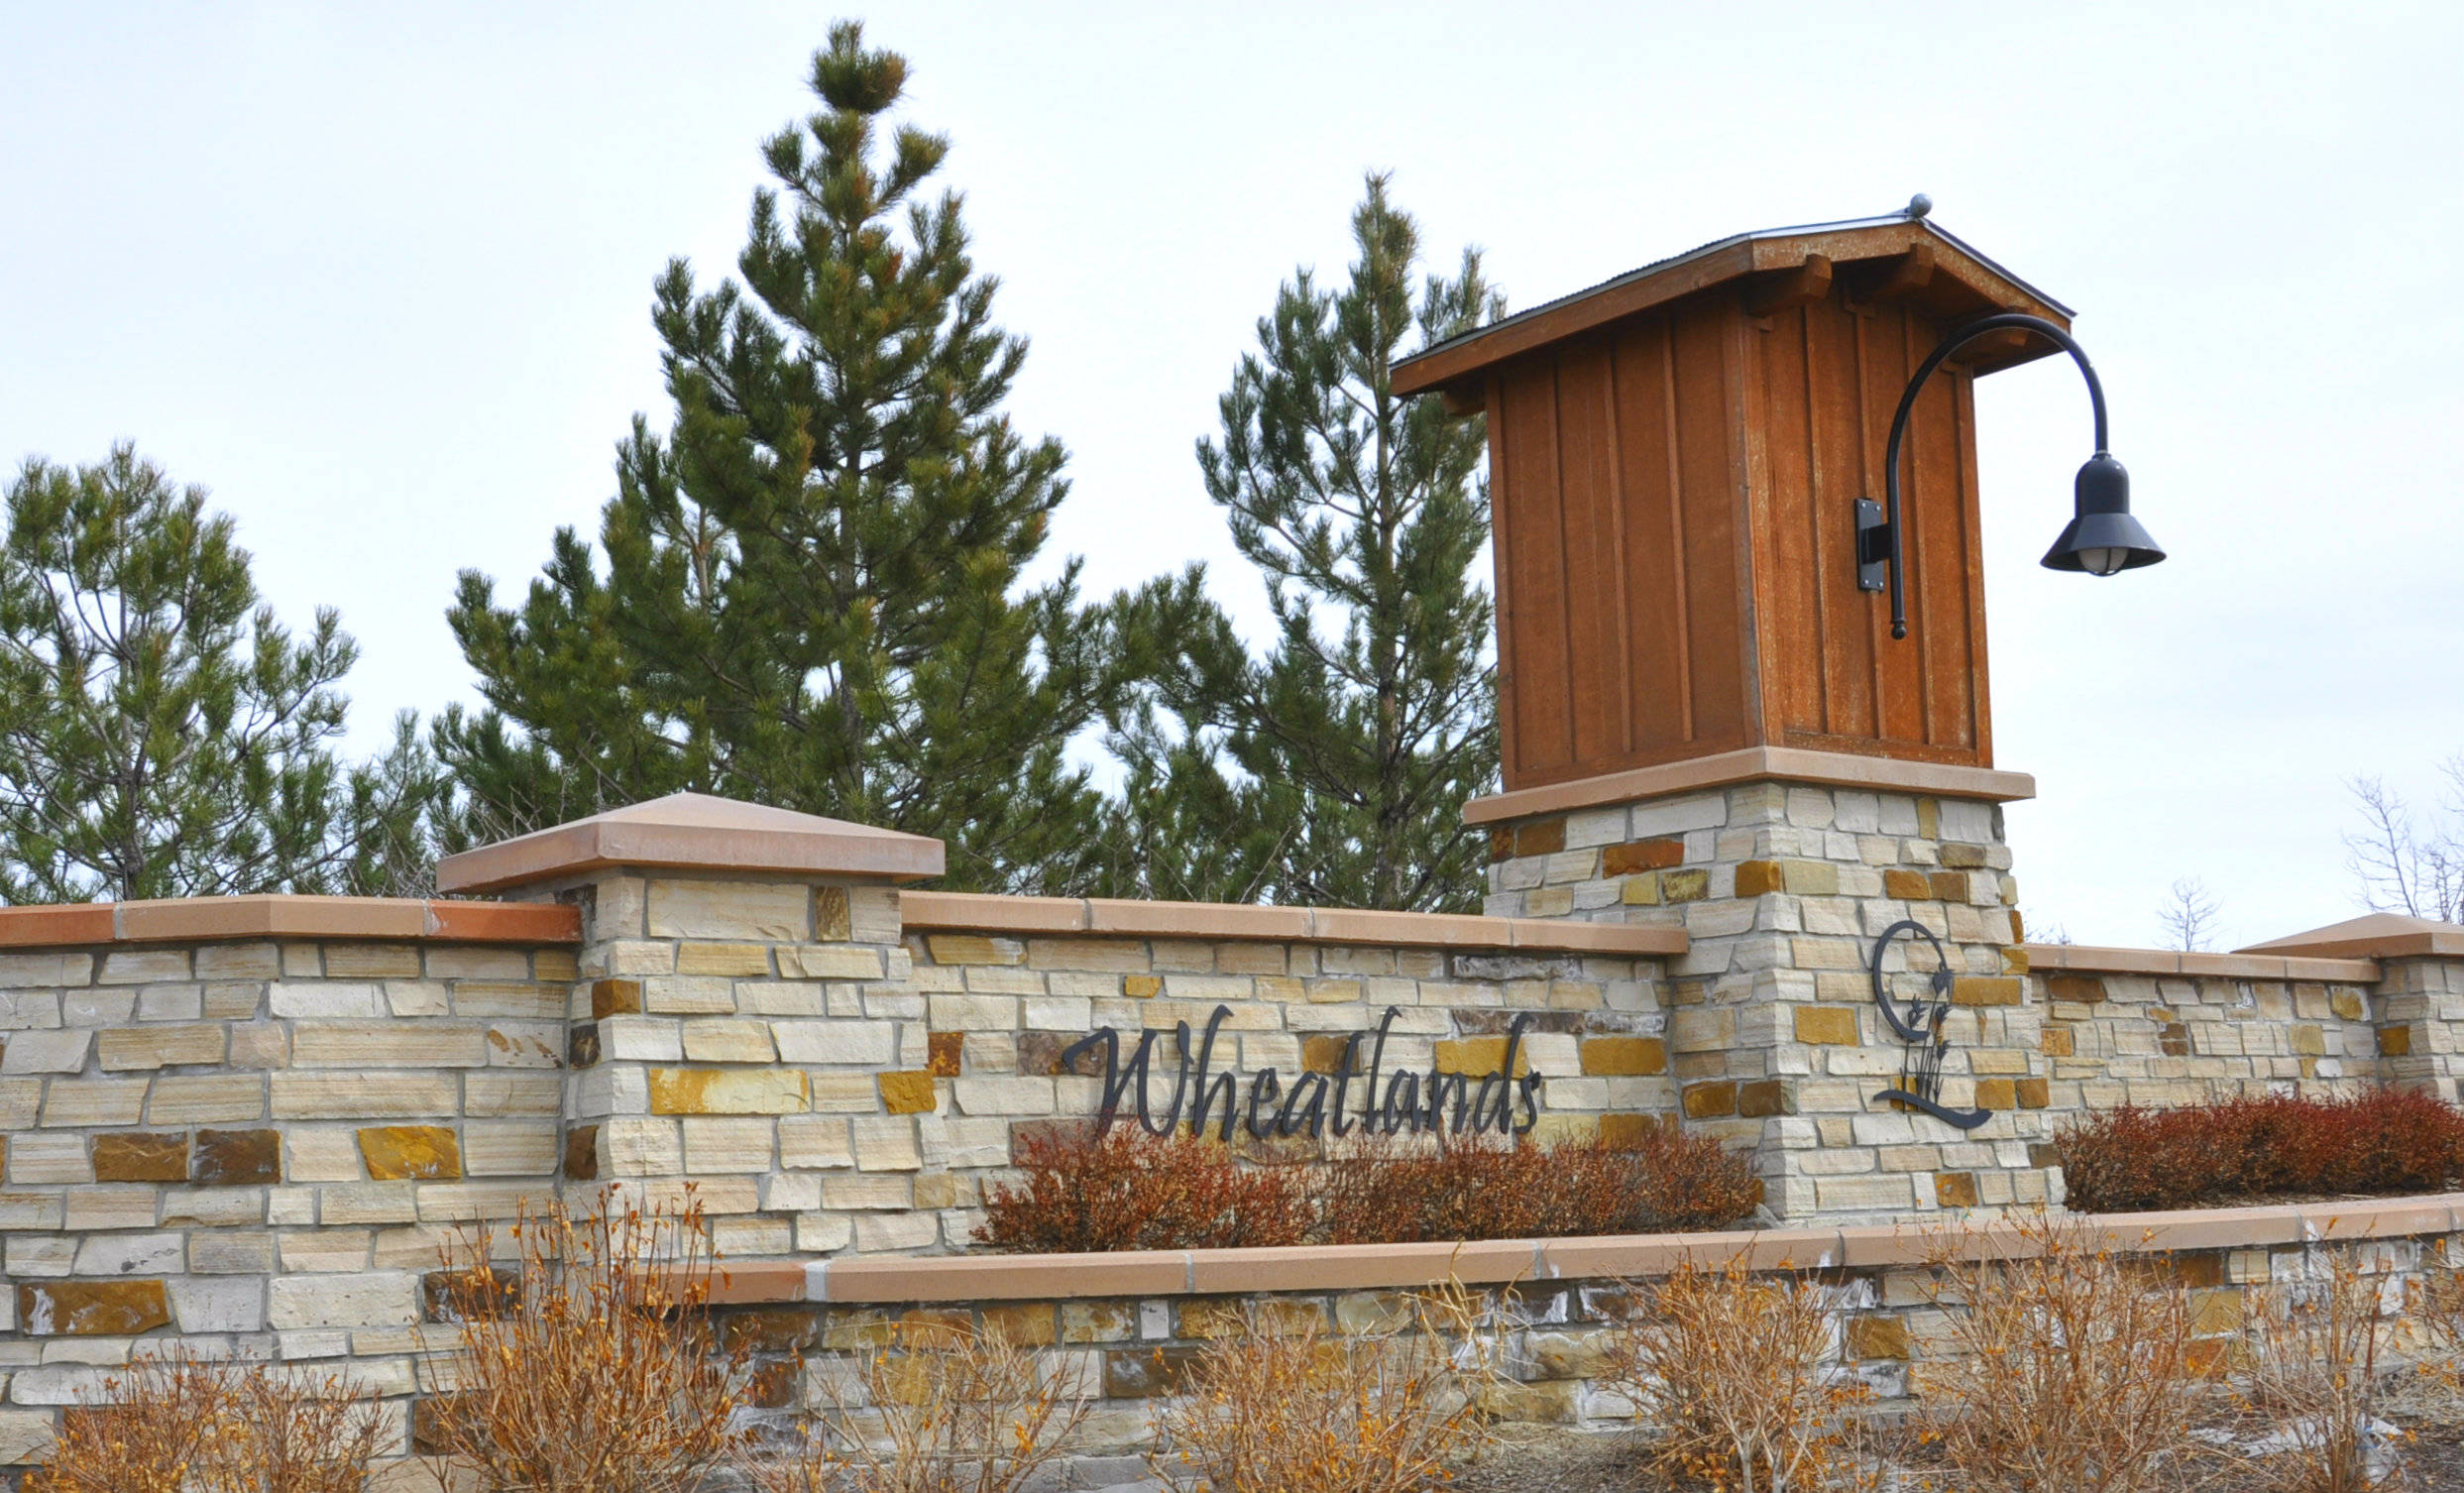 wheatlands in aurora co